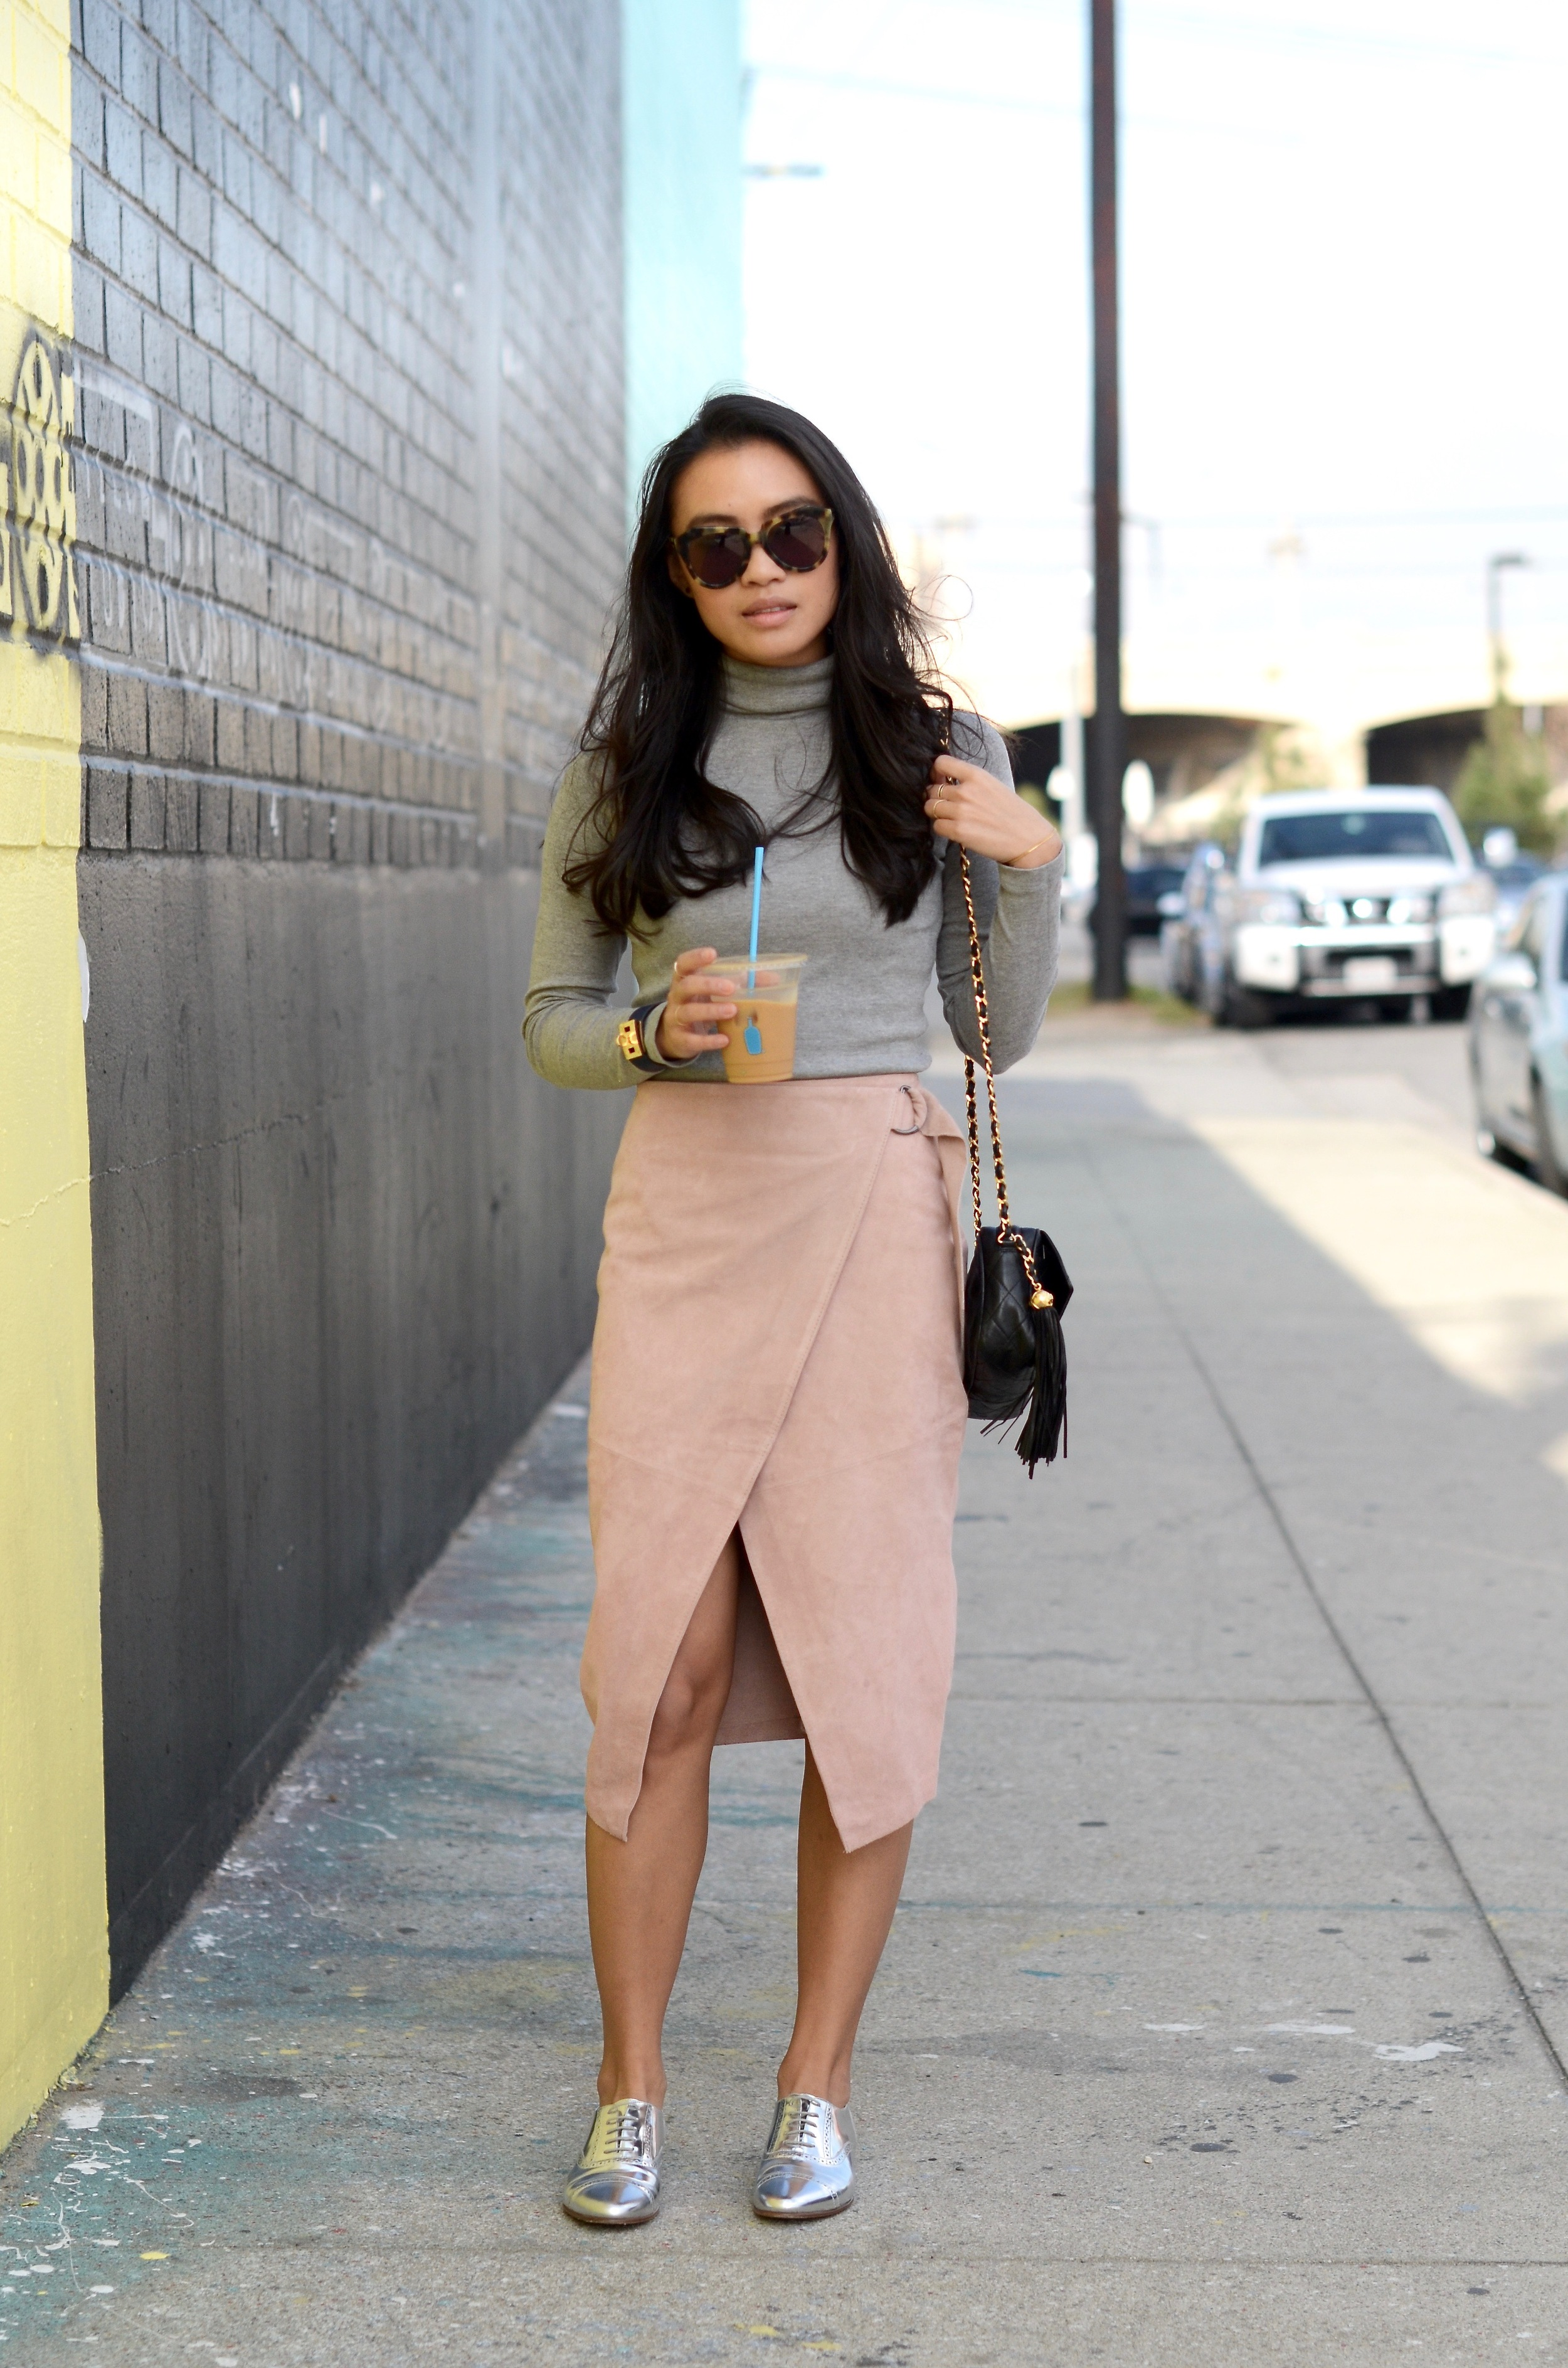 Just Goh With It-Outfit-Turtleneck-suede-wrap-slirt-vintage-chanel-metallic-oxfords-8.jpg